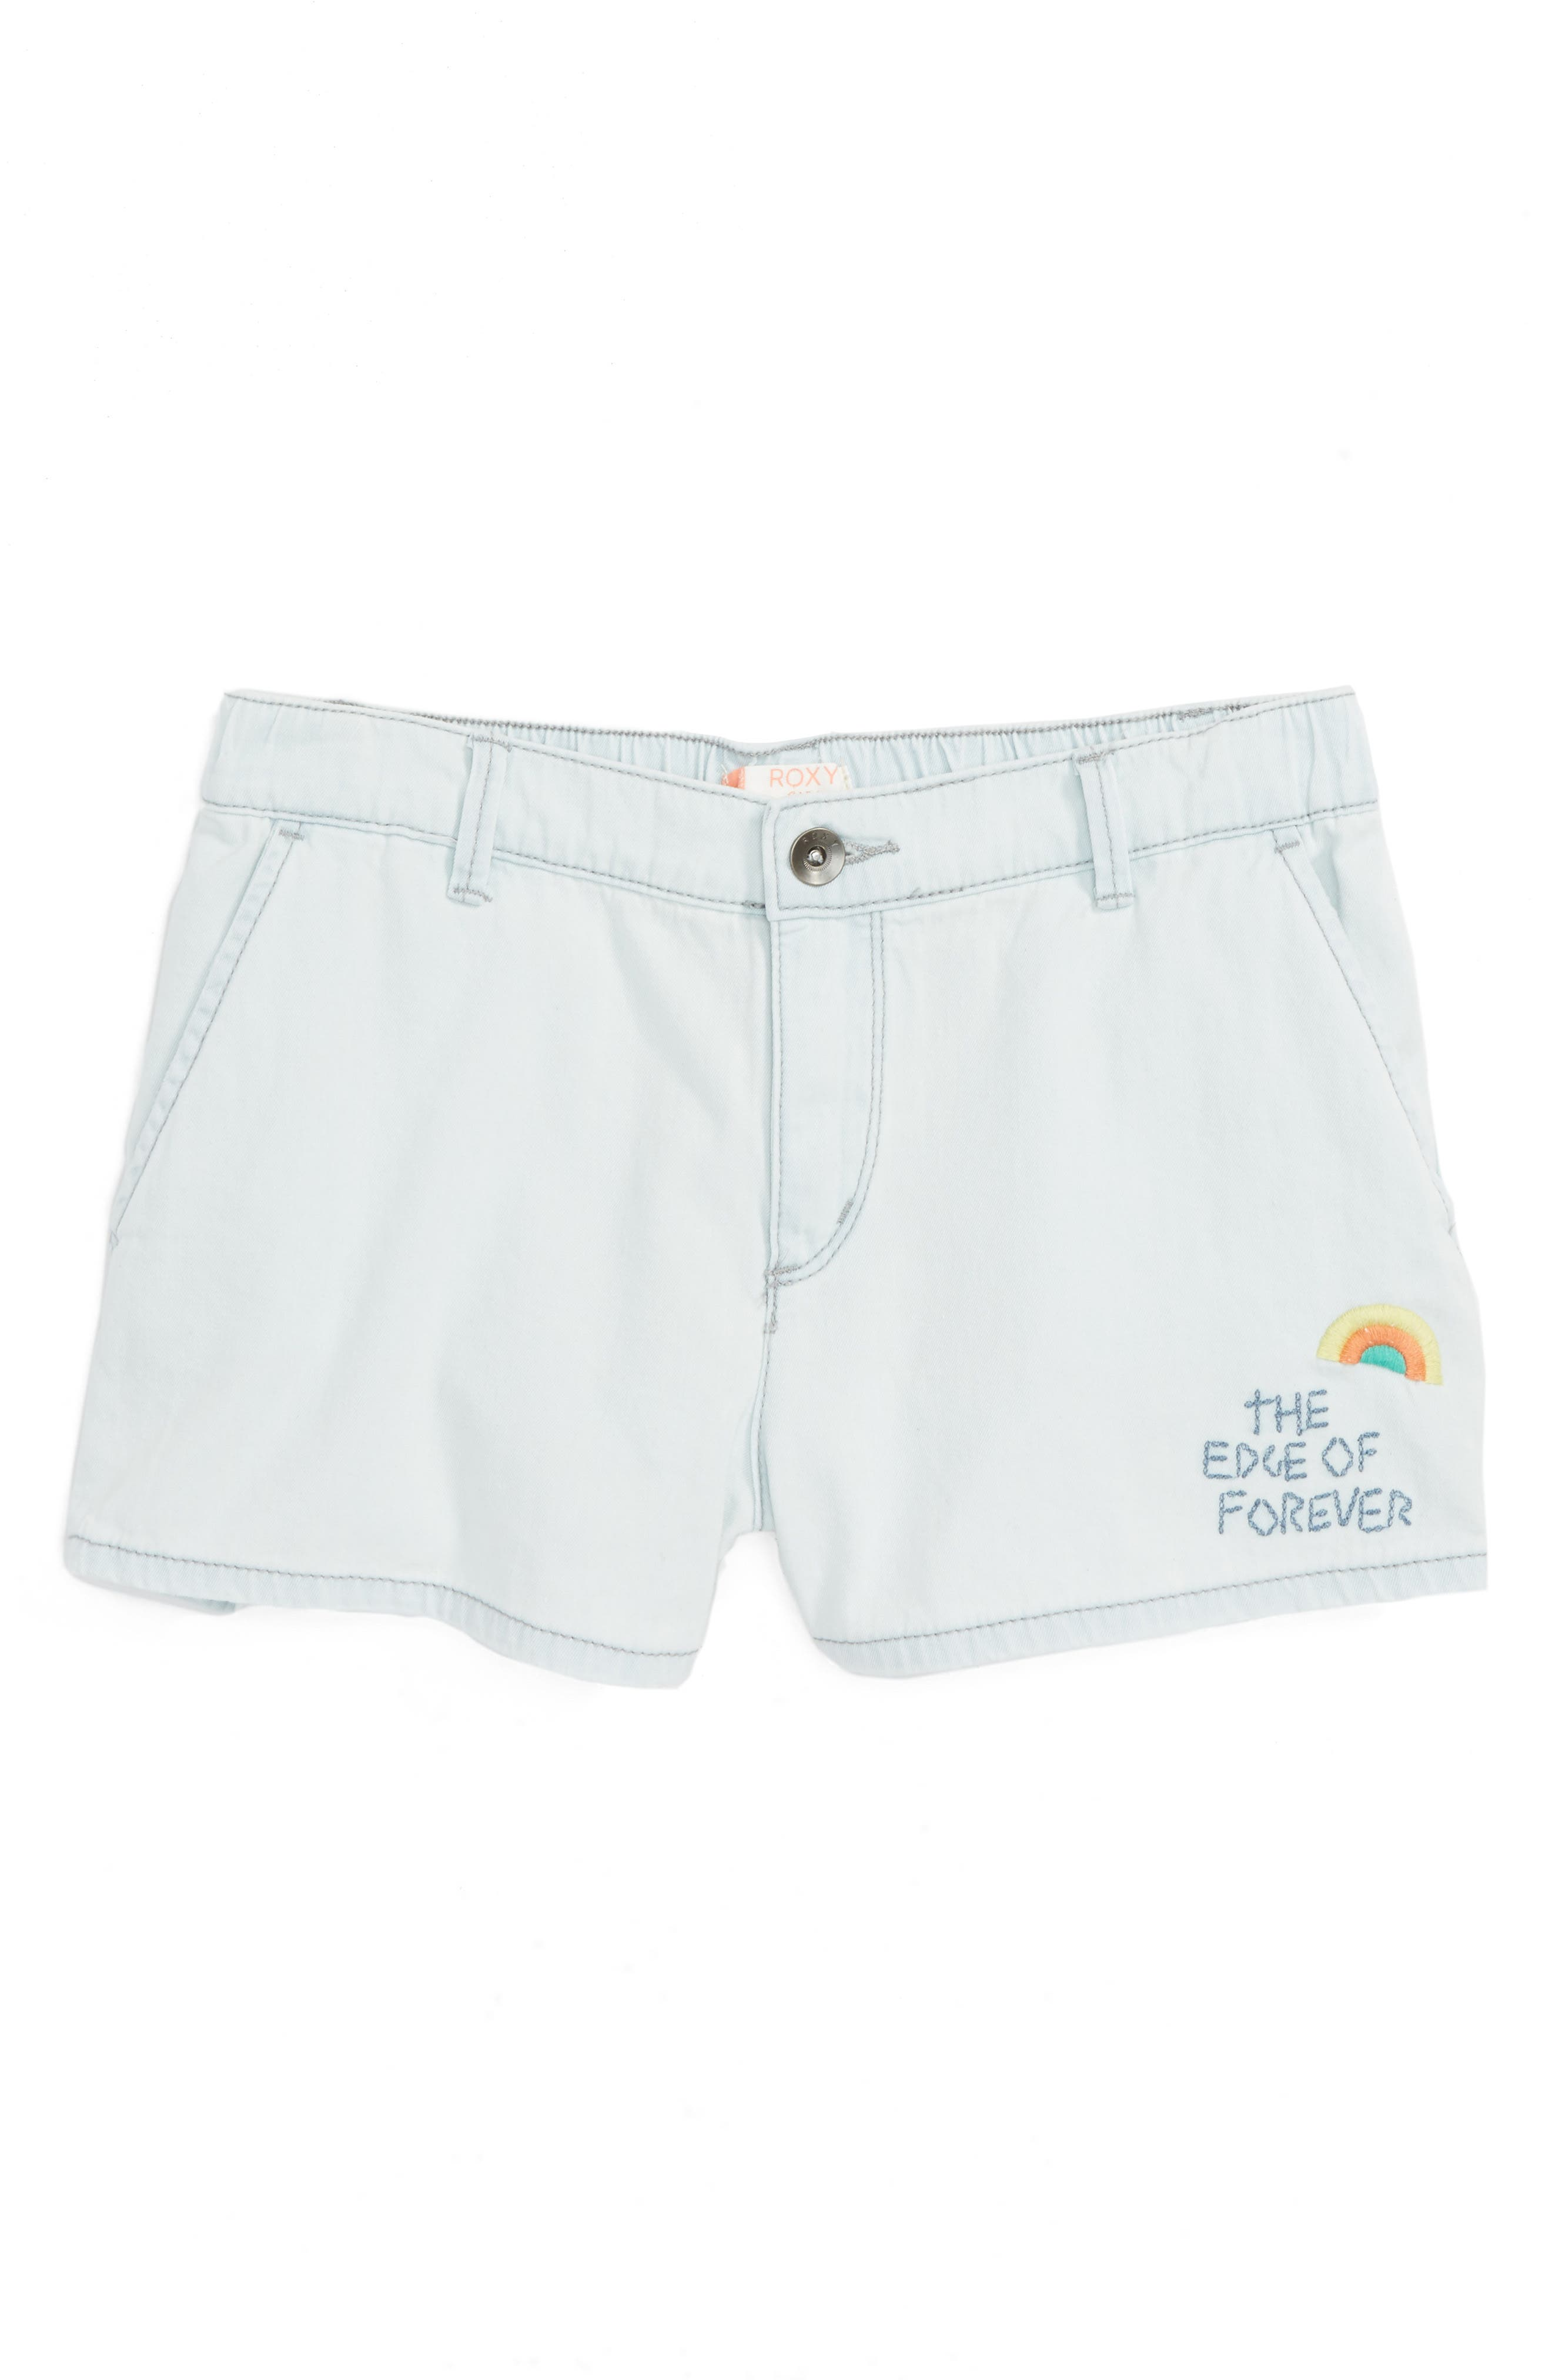 Roxy West Coast And U - Edge of Forever Rainbow Shorts (Big Girls)